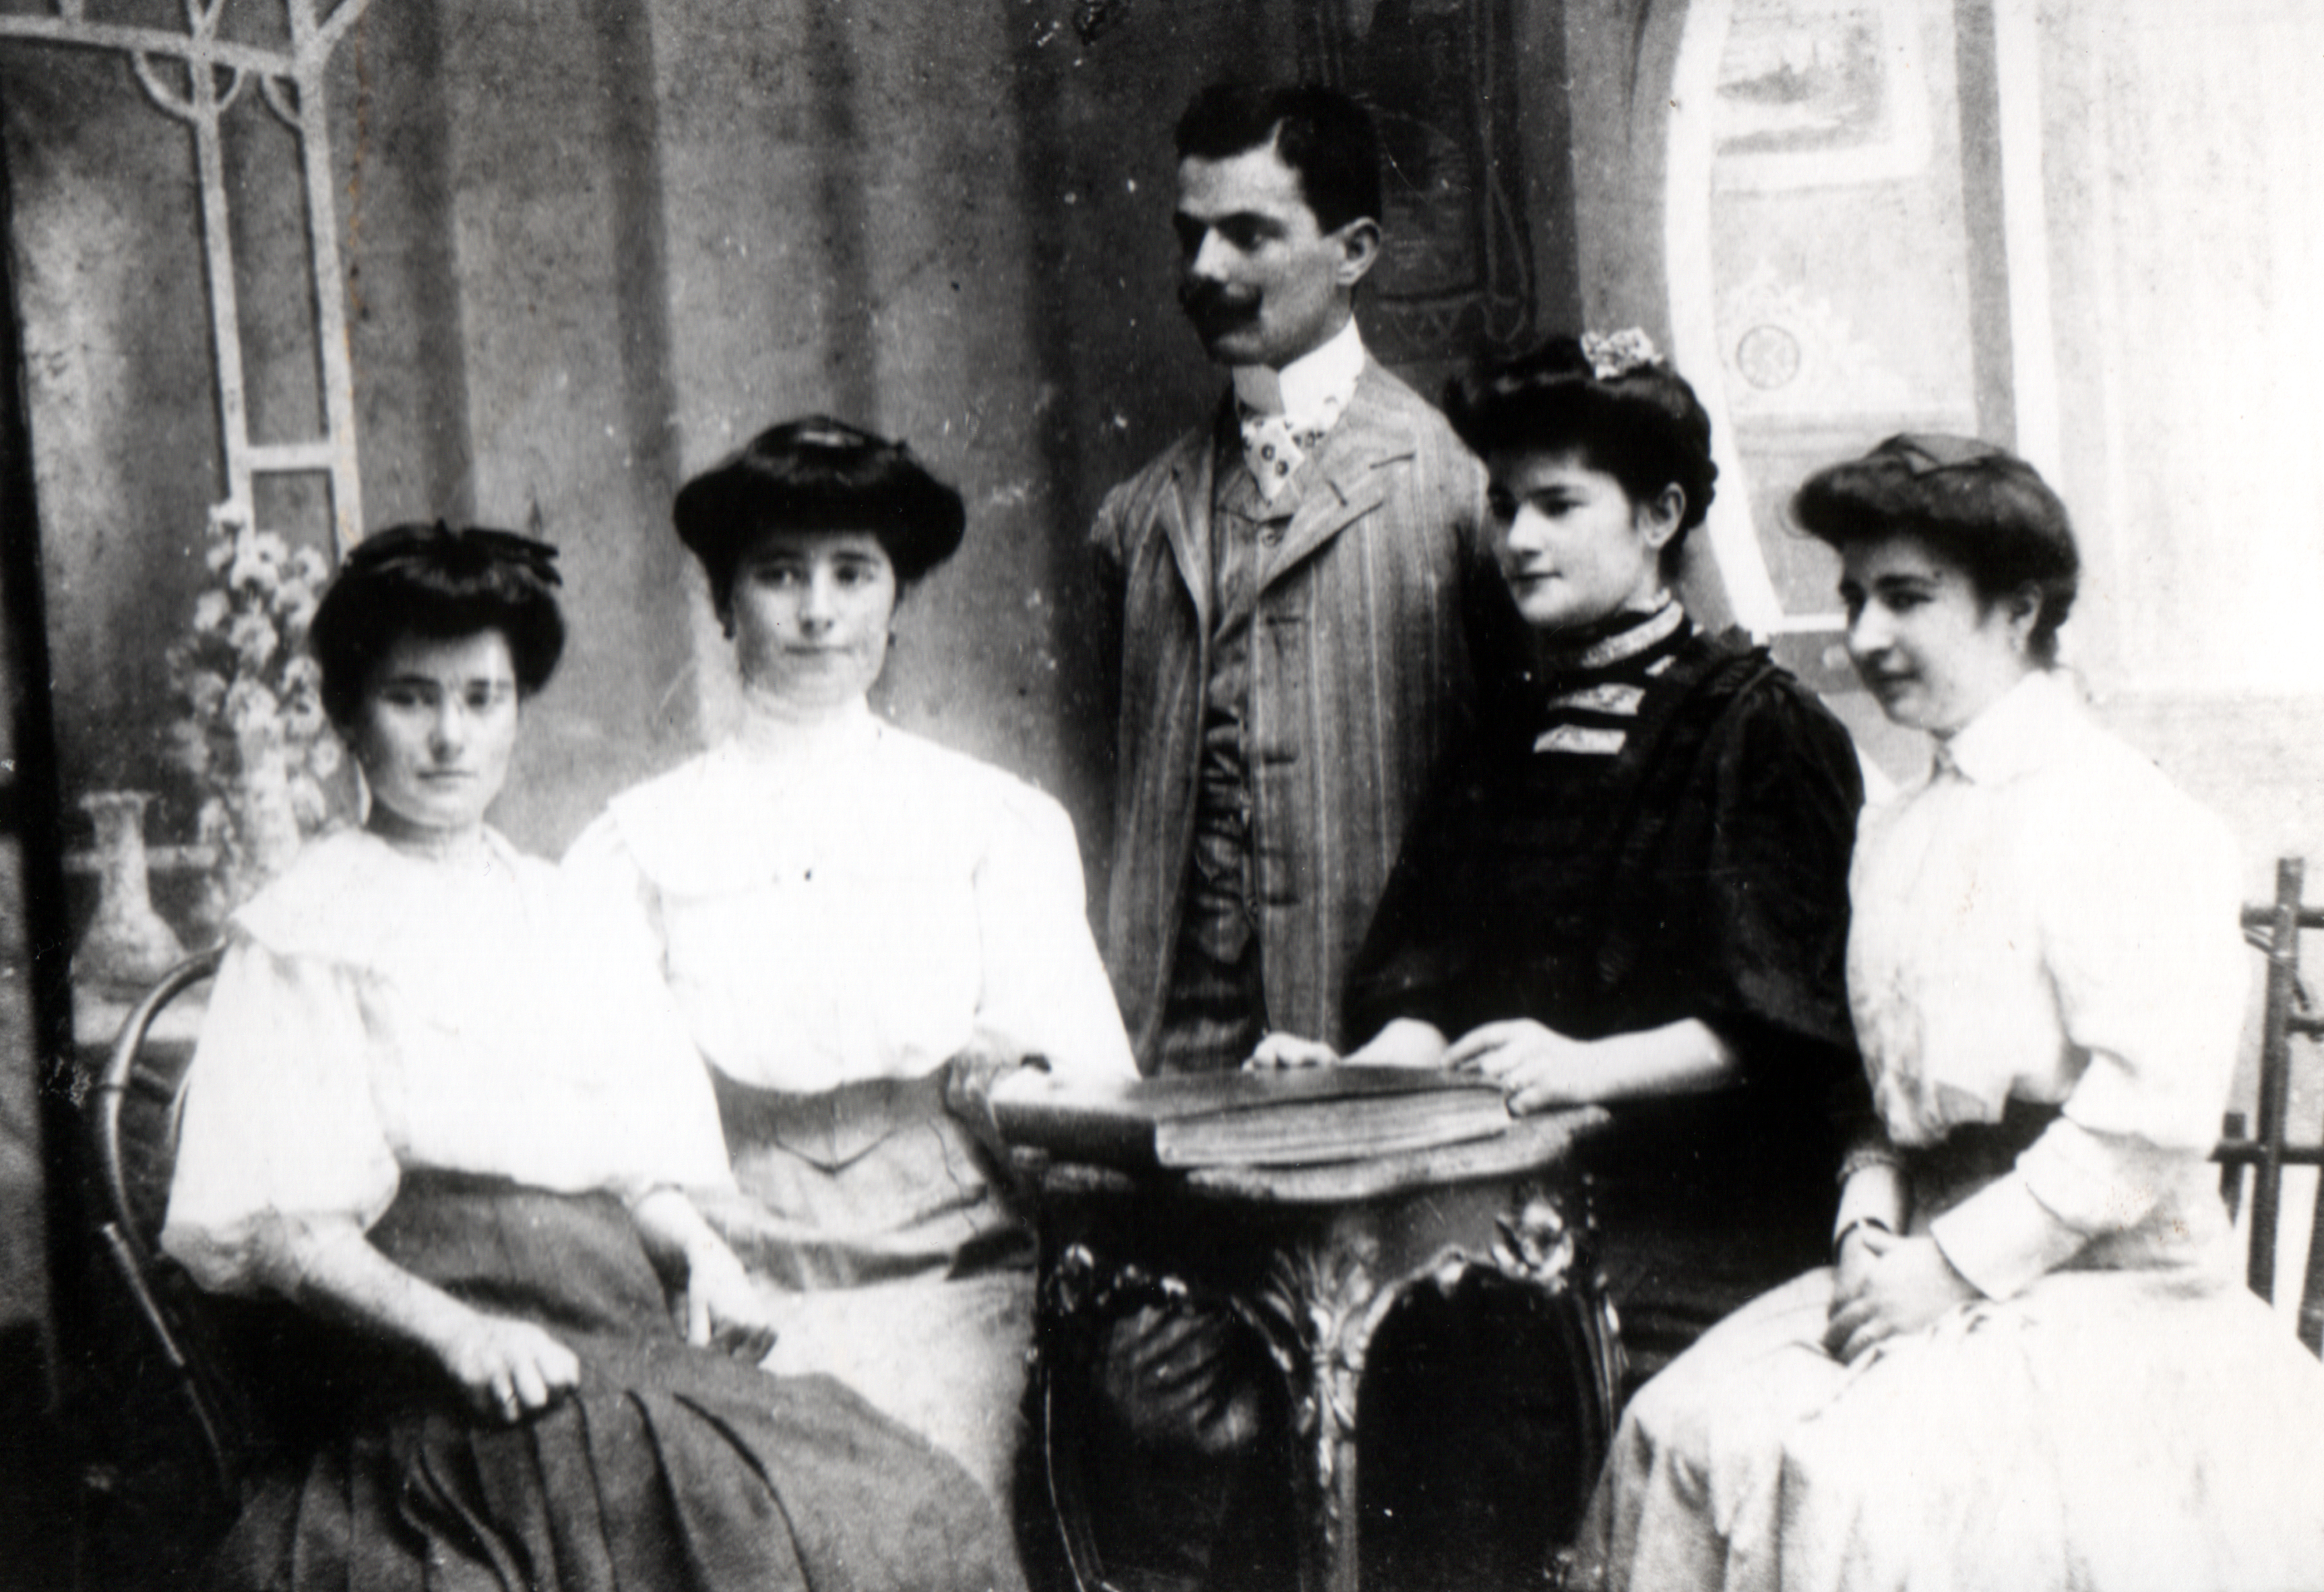 Izidor Weiss with his siblings